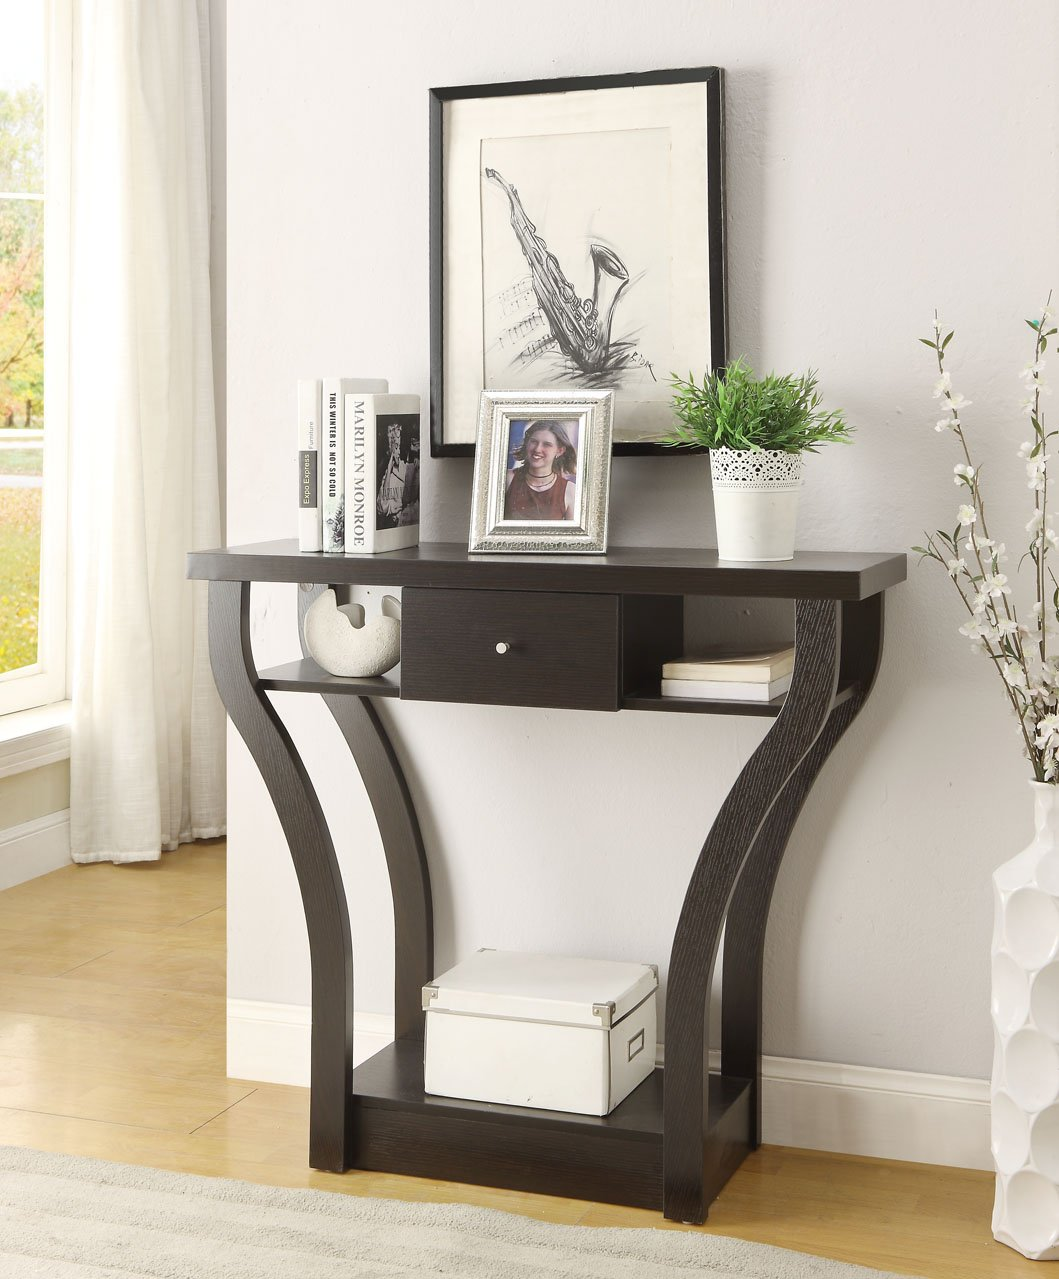 Amazon.com: Cappuccino Finish Curved Console Sofa Entry Hall Table With  Shelf / Drawer: Kitchen U0026 Dining